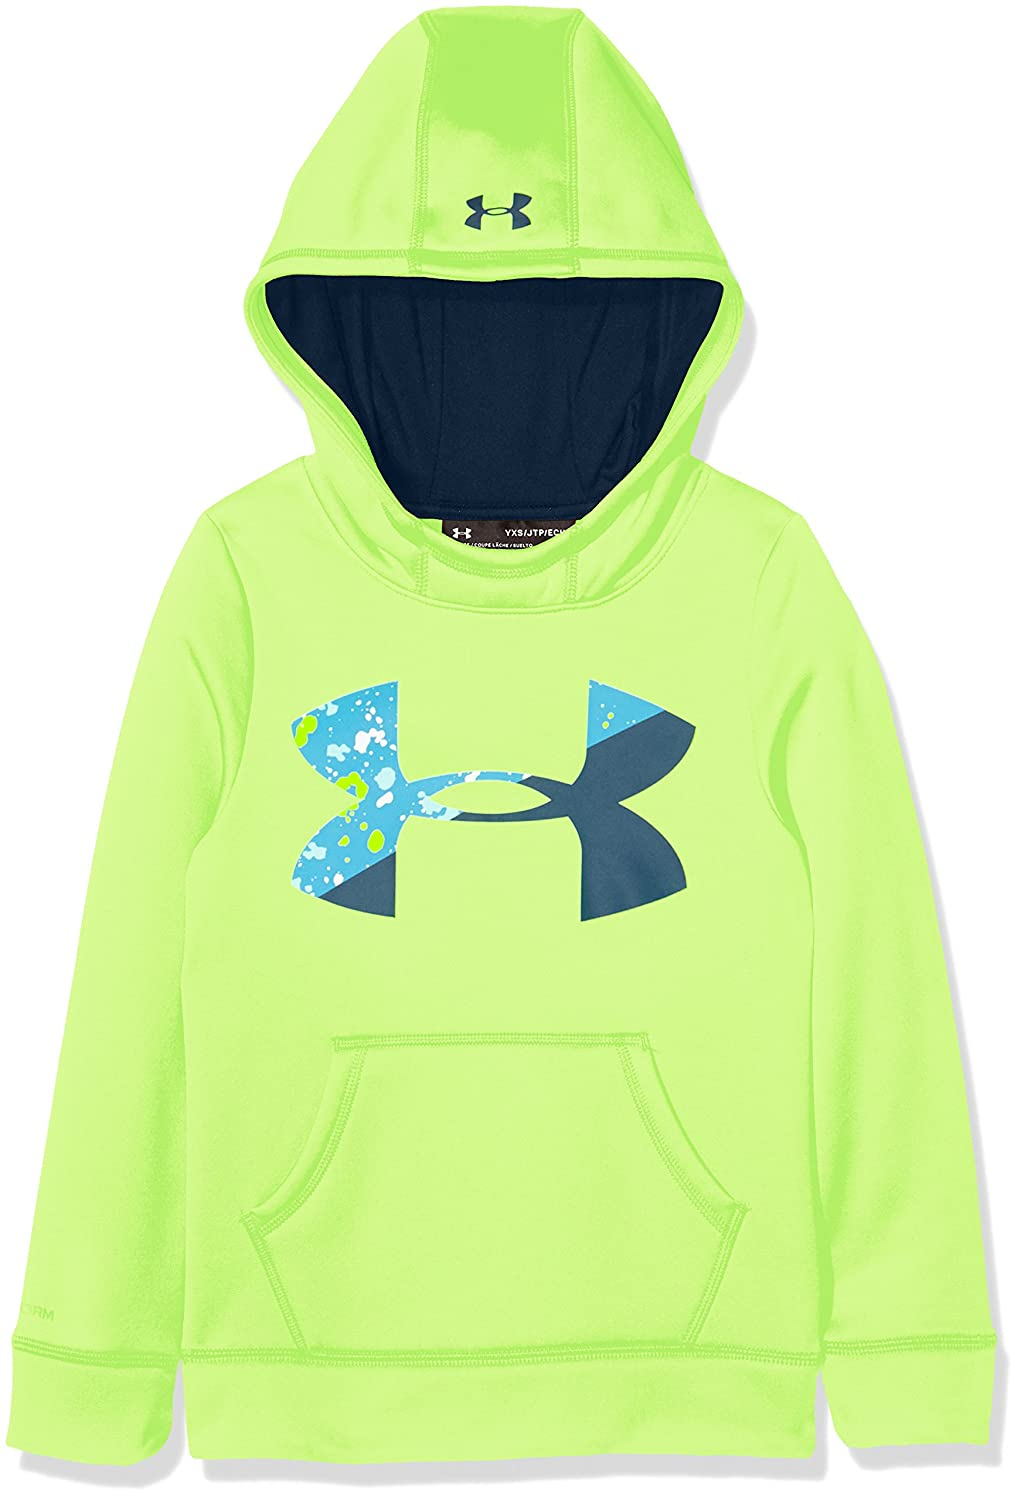 Under Armour Fleece Big Logo Hoody, Felpa con Cappuccio Bambina